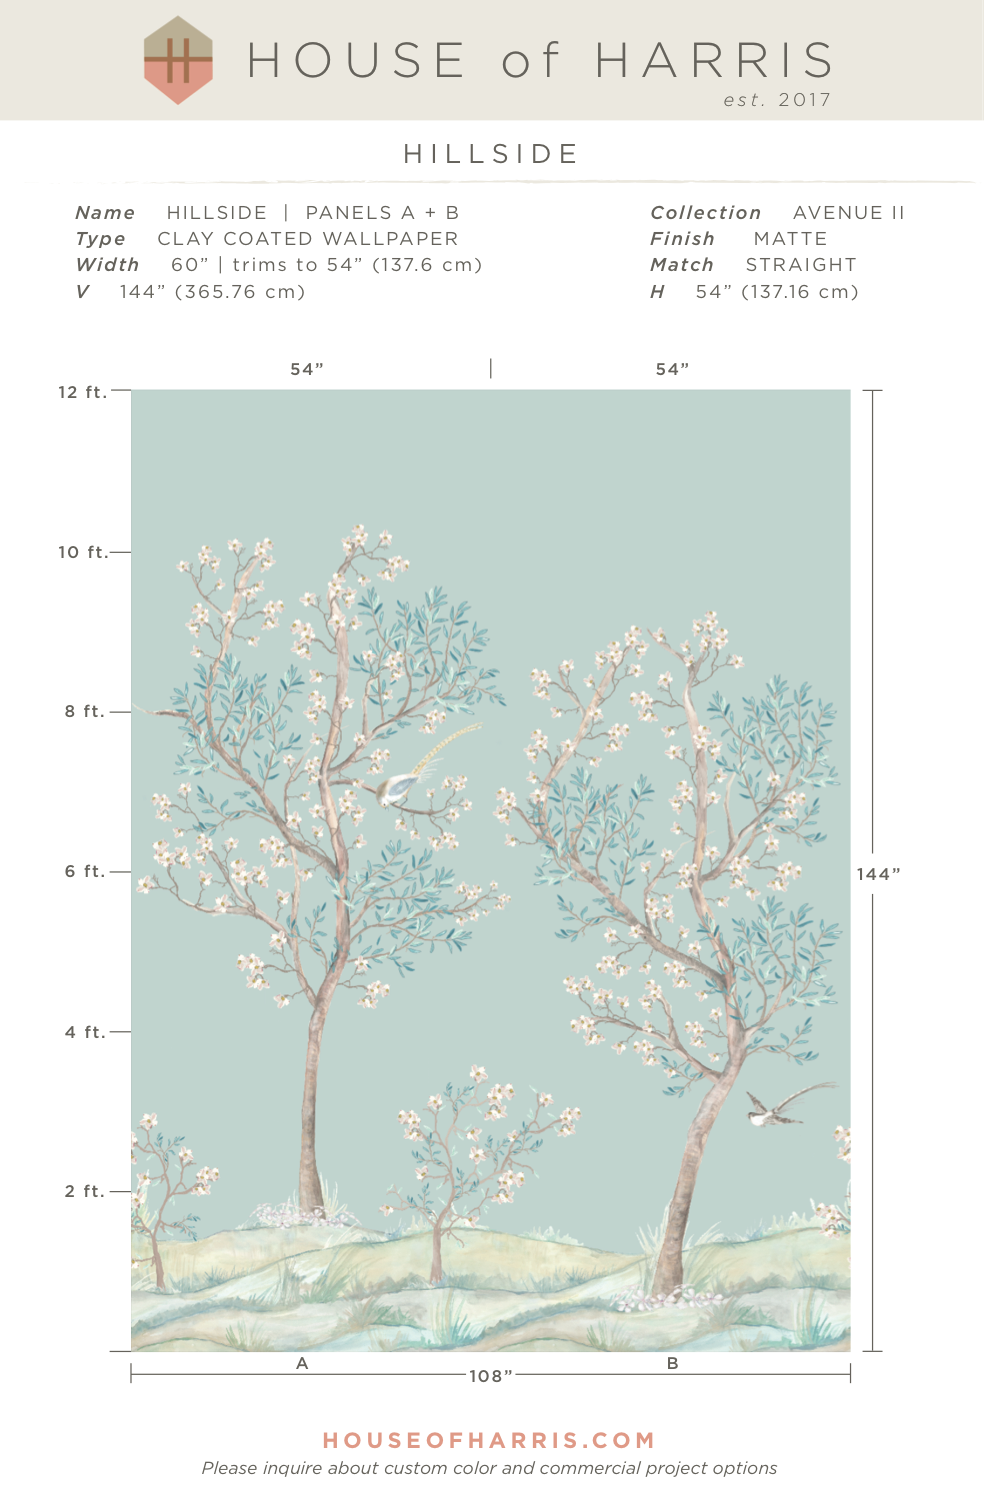 HoH_HillsidePanels_Specifications.png